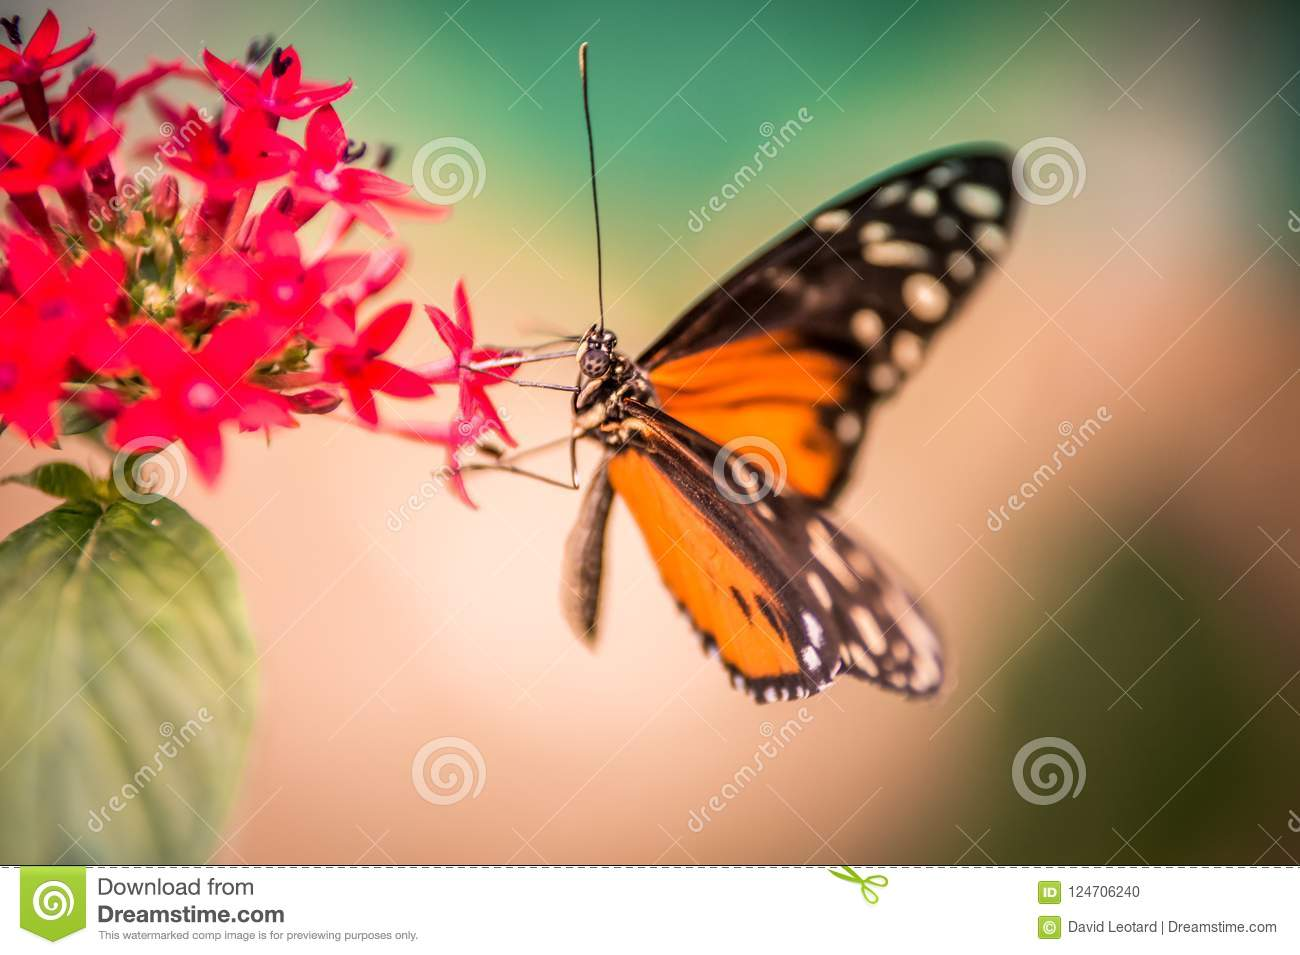 White And Black Orange Butterfly On A Red Flower Alone On Pink And Green Backgrounds Stock Photo Image Of Romantic Contrast 124706240